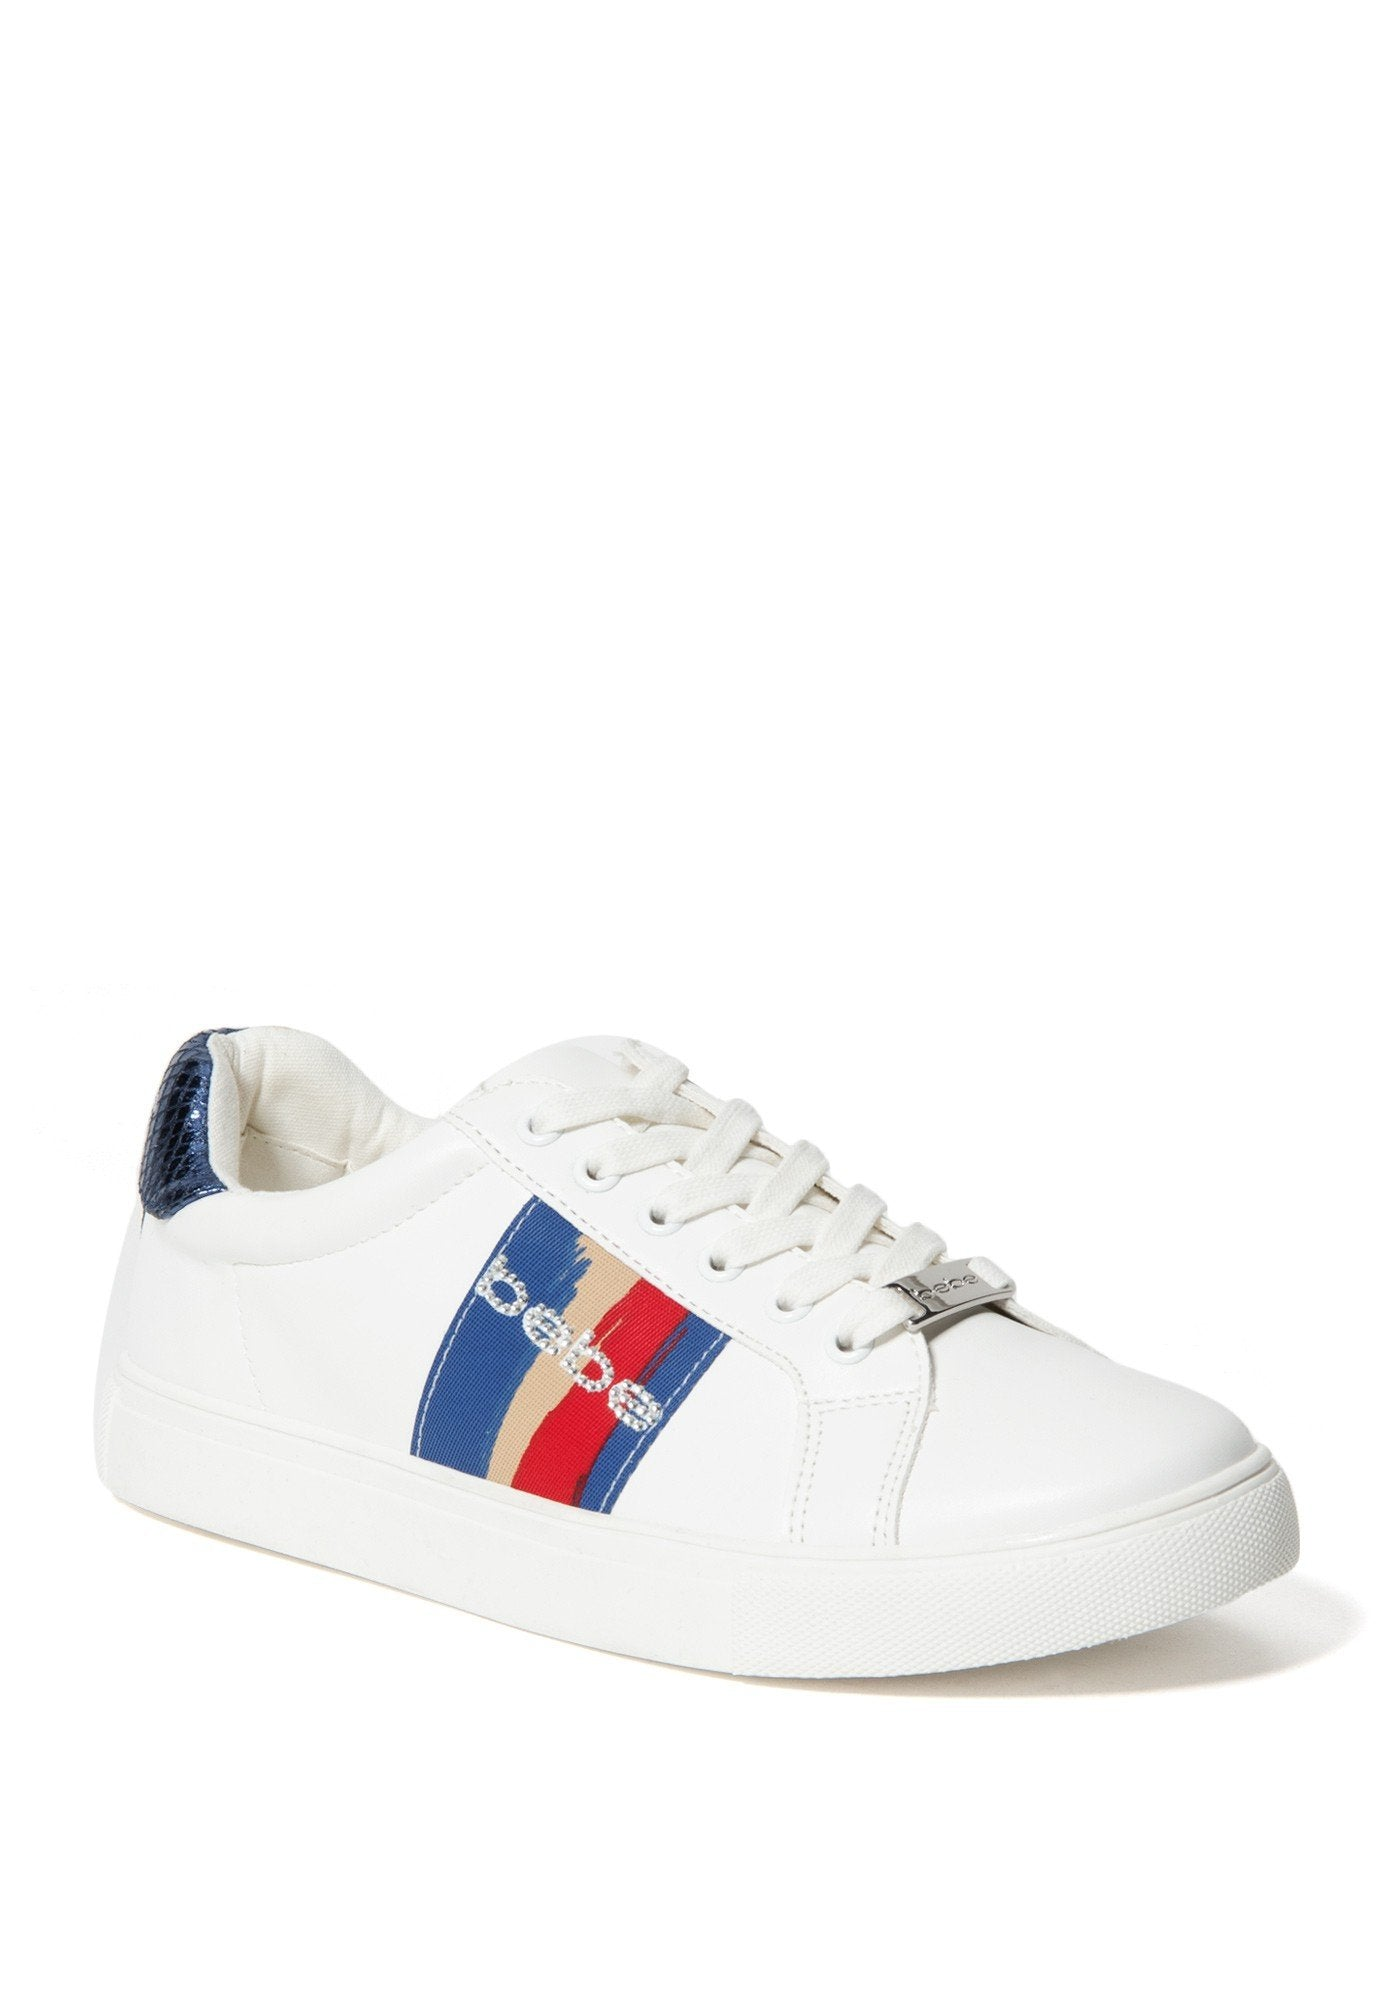 Bebe Women's Coley Logo Sneakers, Size 6 in White/Blue Synthetic